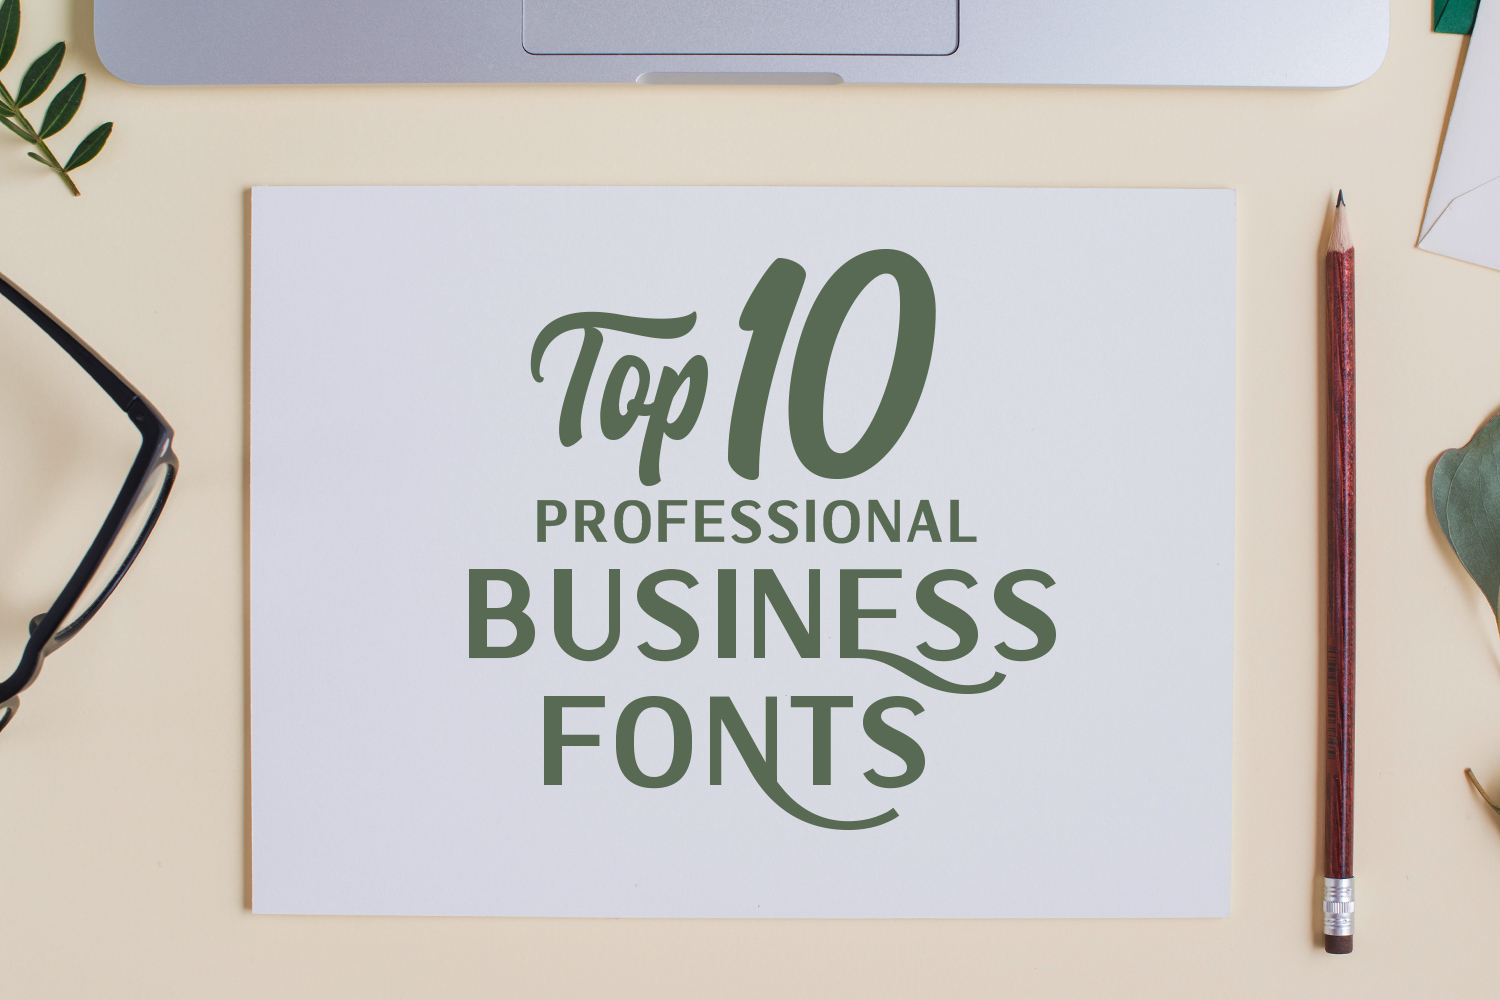 Top 10 Professional Business Fonts